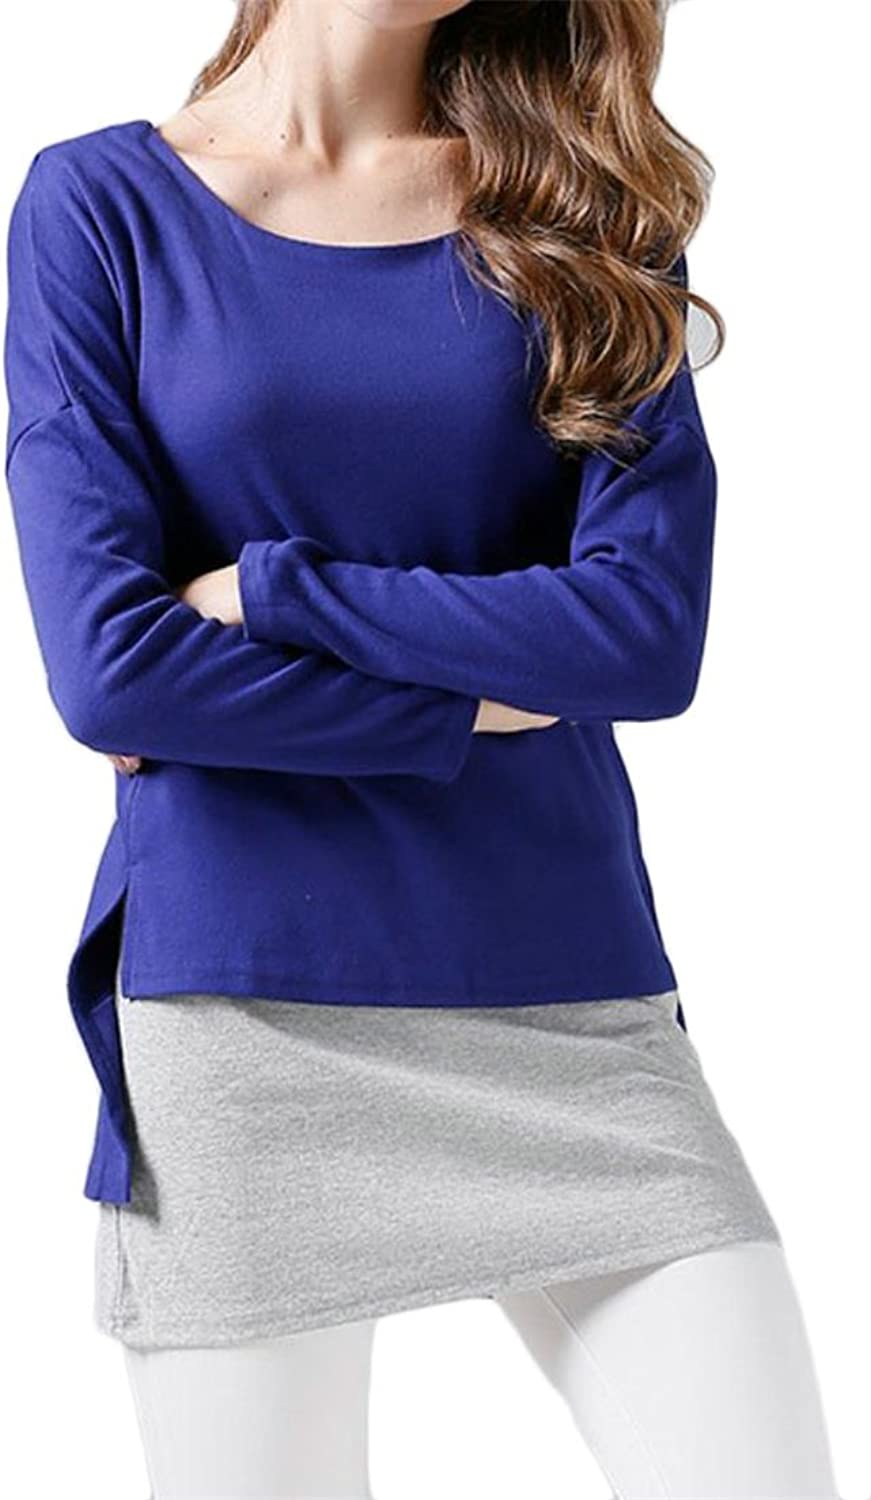 Cromoncent Womens Round Neck Long Sleeve Contrast color Fake Two Patch Sweatshirt Tee Shirts